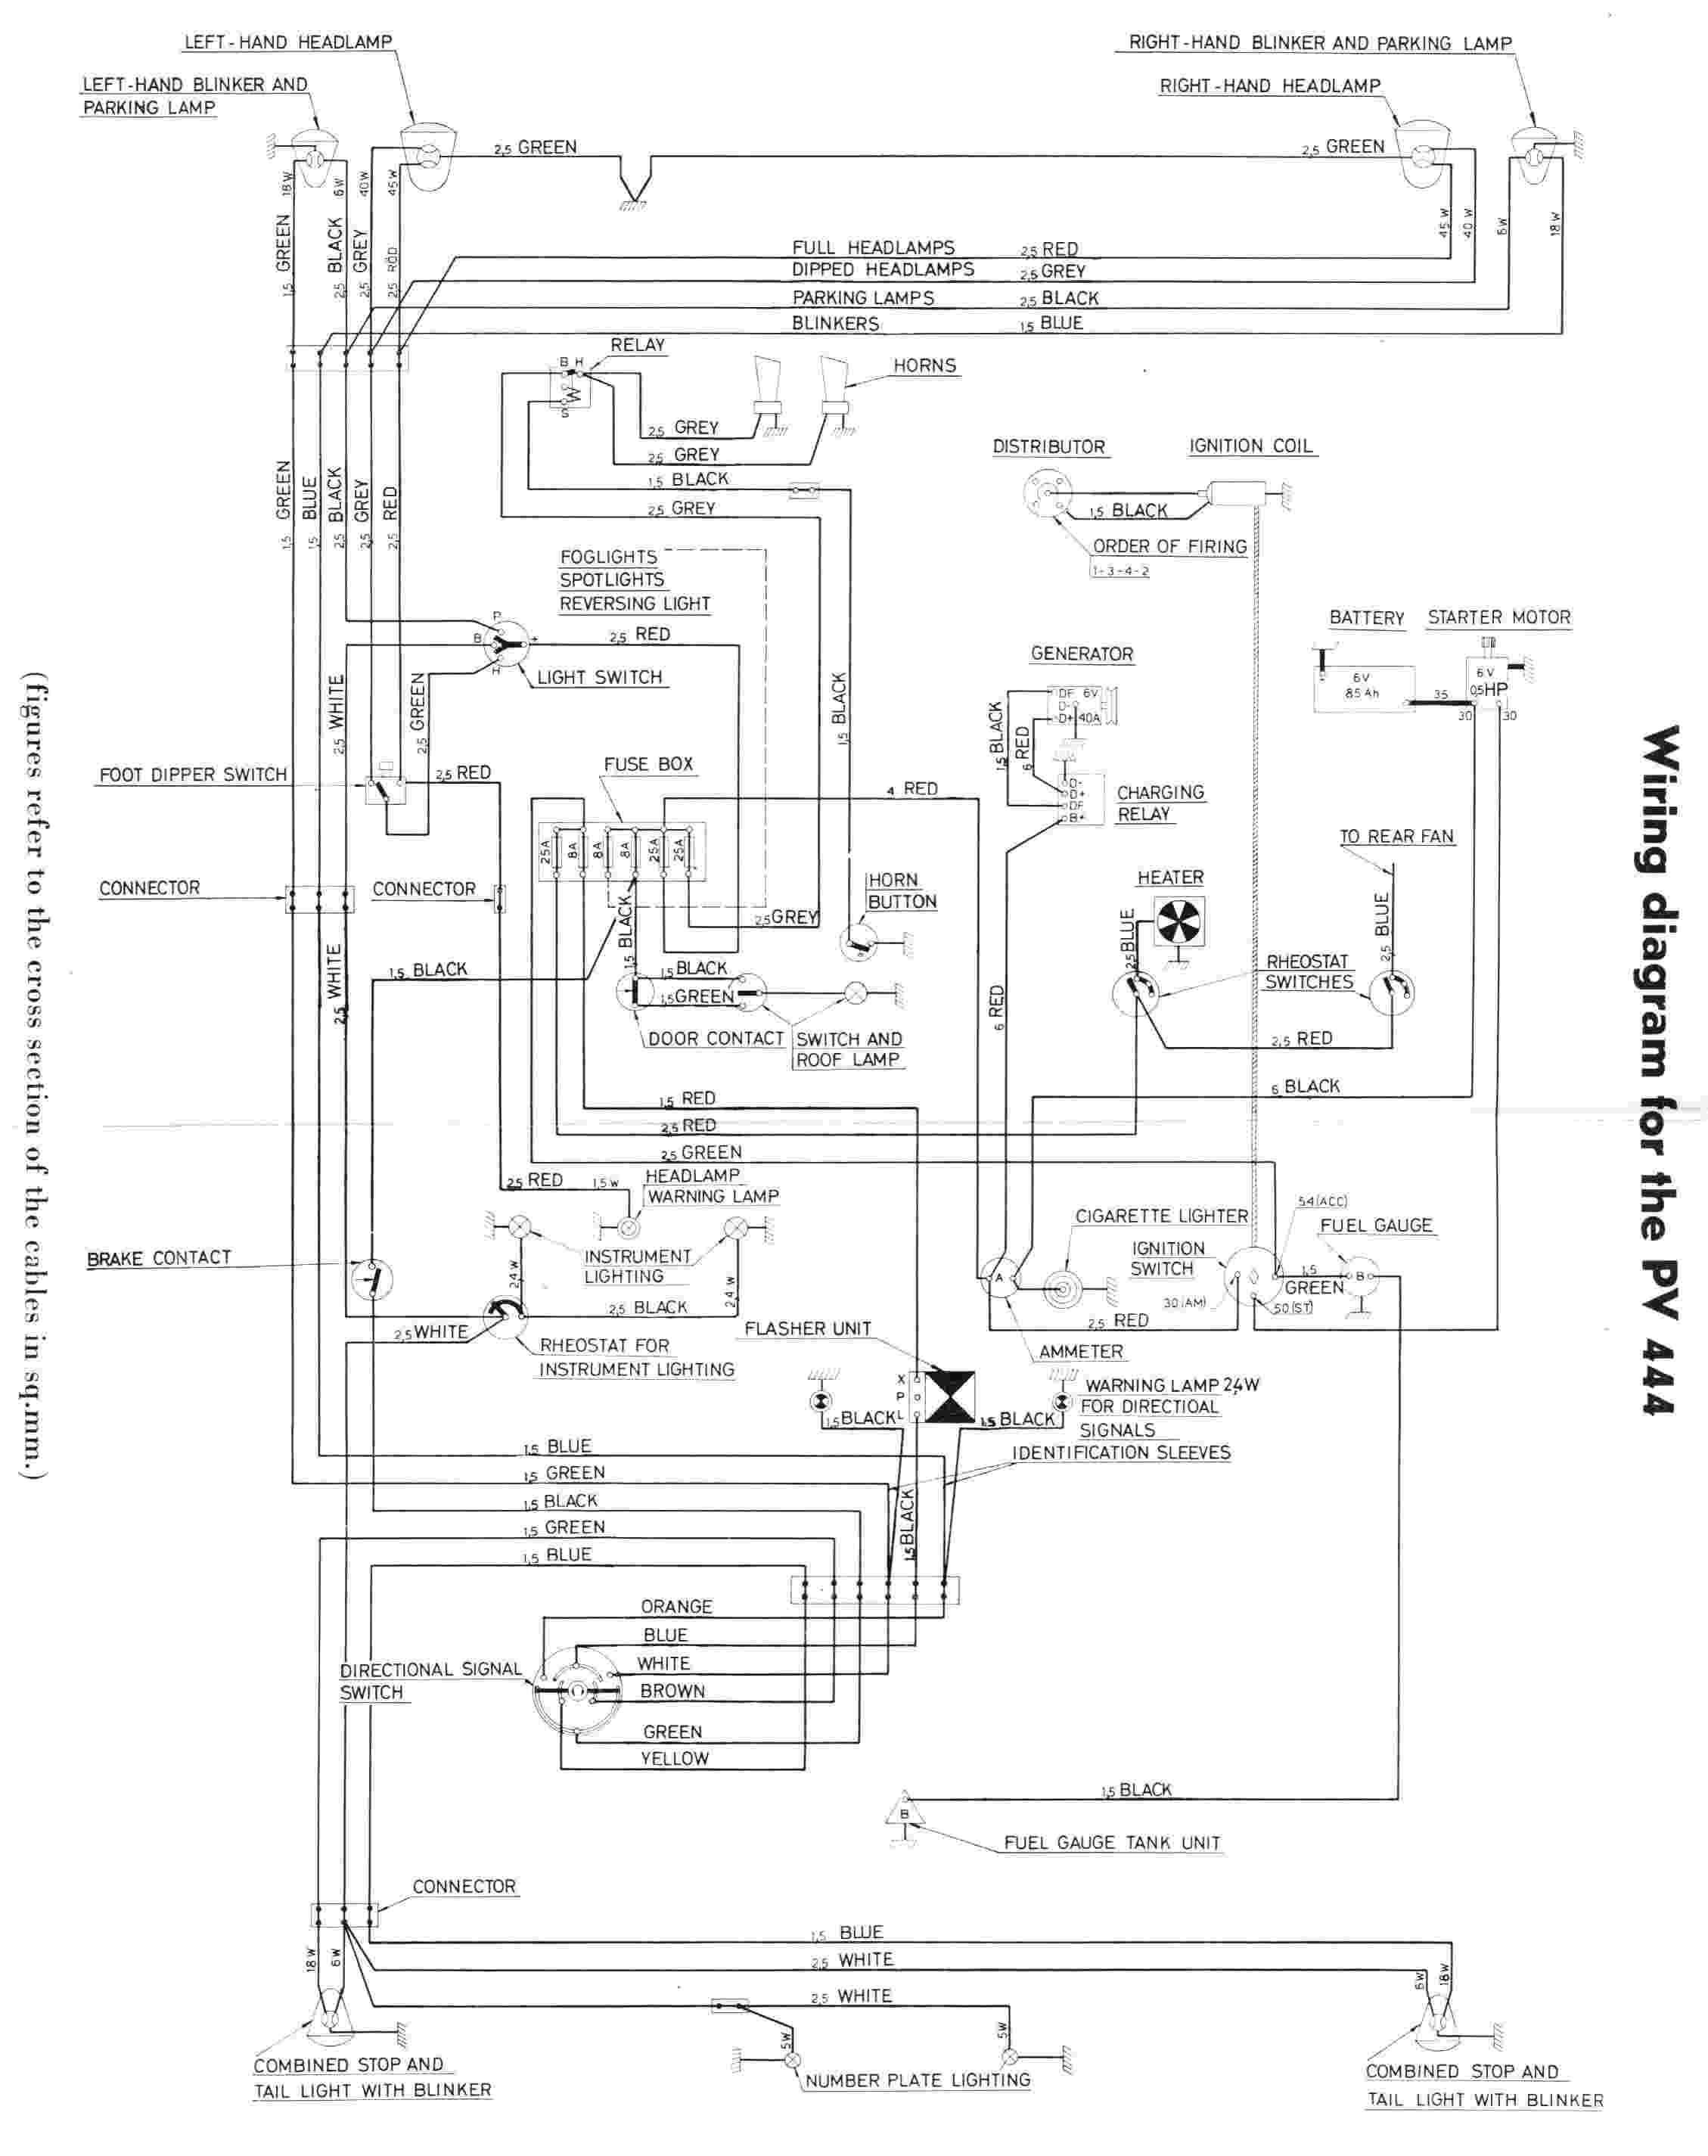 1999 Volvo V70 Ignition Wiring Diagram Free For You 1986 White Truck Database Rh 11 1 Infection Nl De